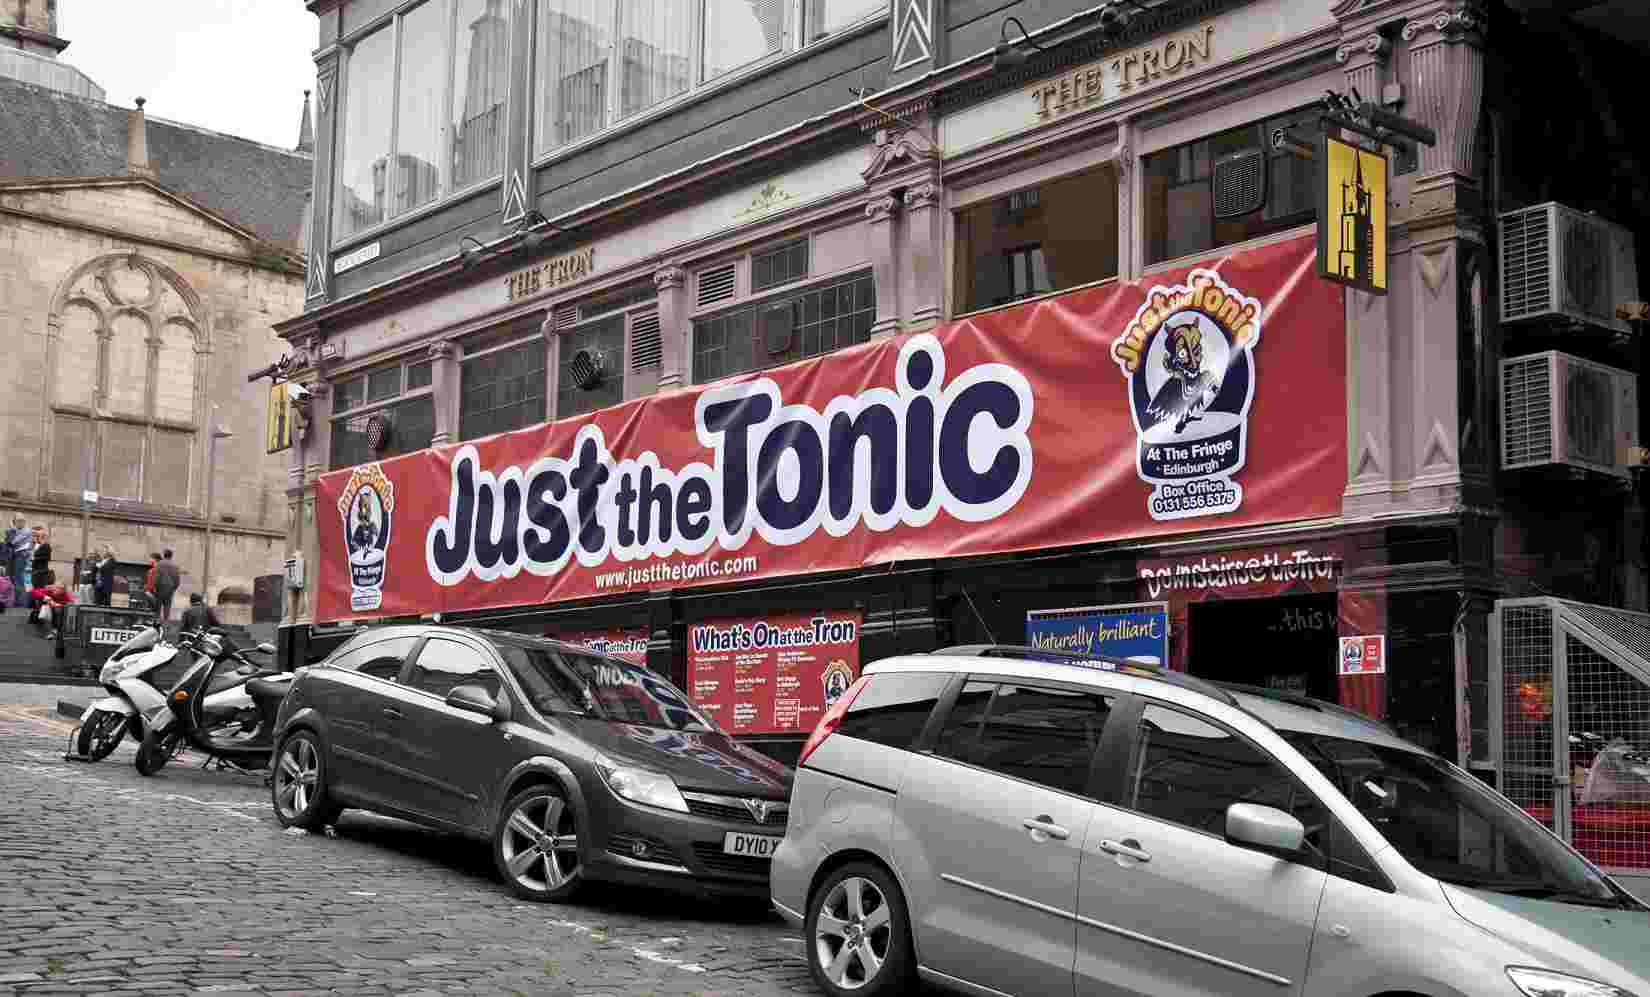 Just Downstairs at The Tron - Just the Tonic Comedy Club